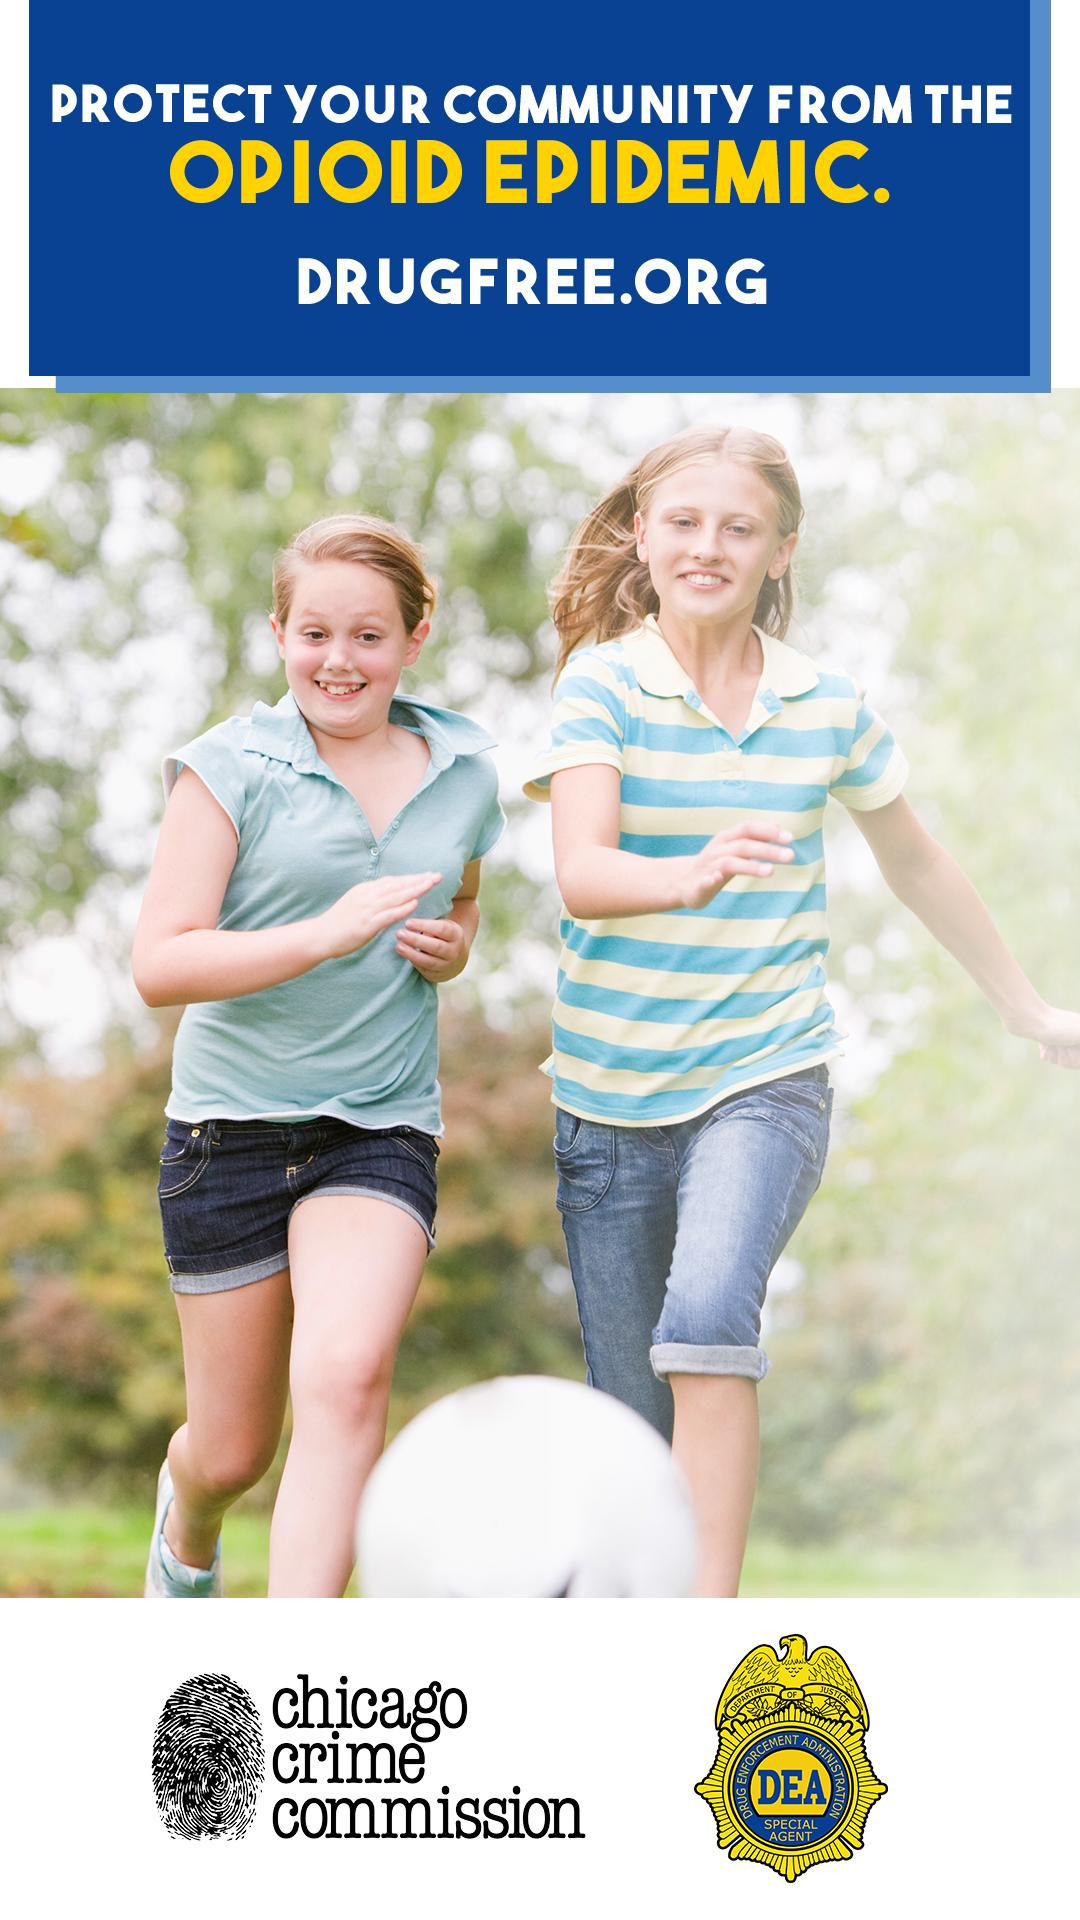 Brochure image of children running